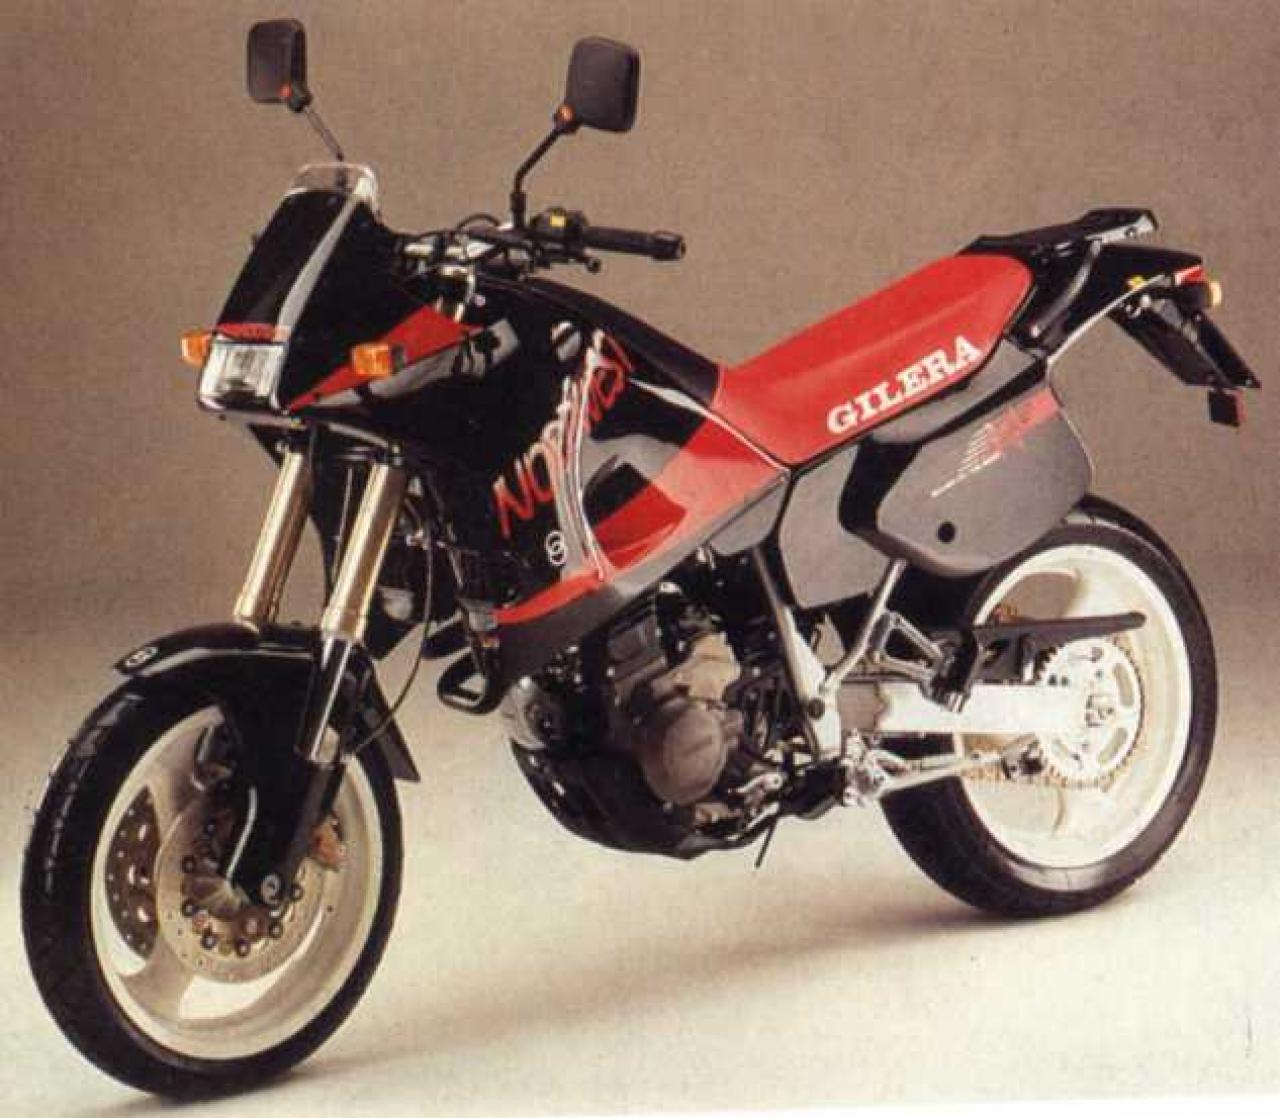 Gilera 600 Nordwest images #96228